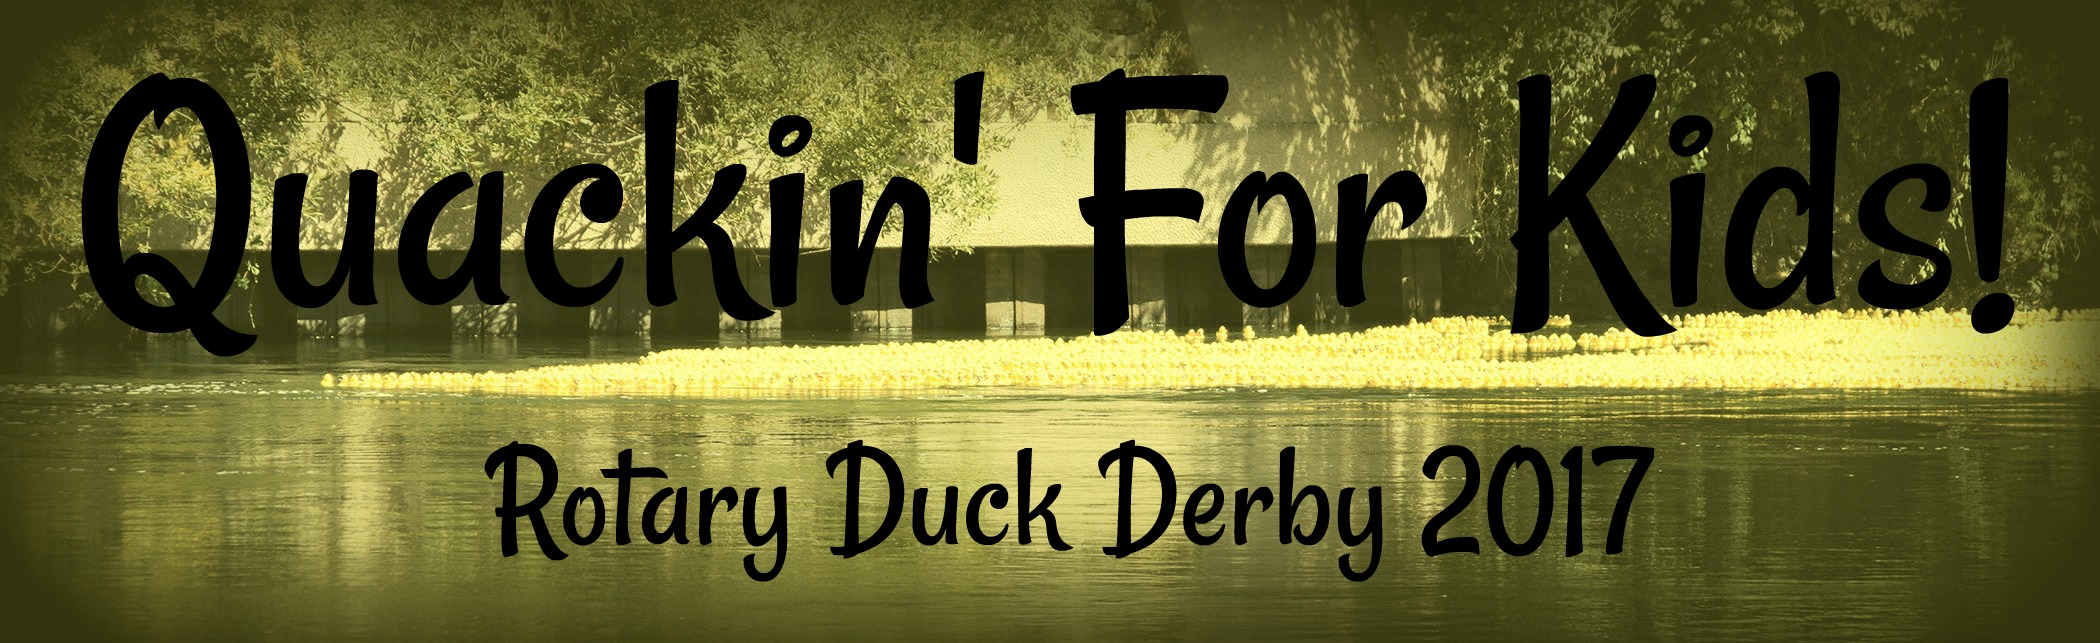 2017 Rotary Duck Derby   Grants Pass, Oregon